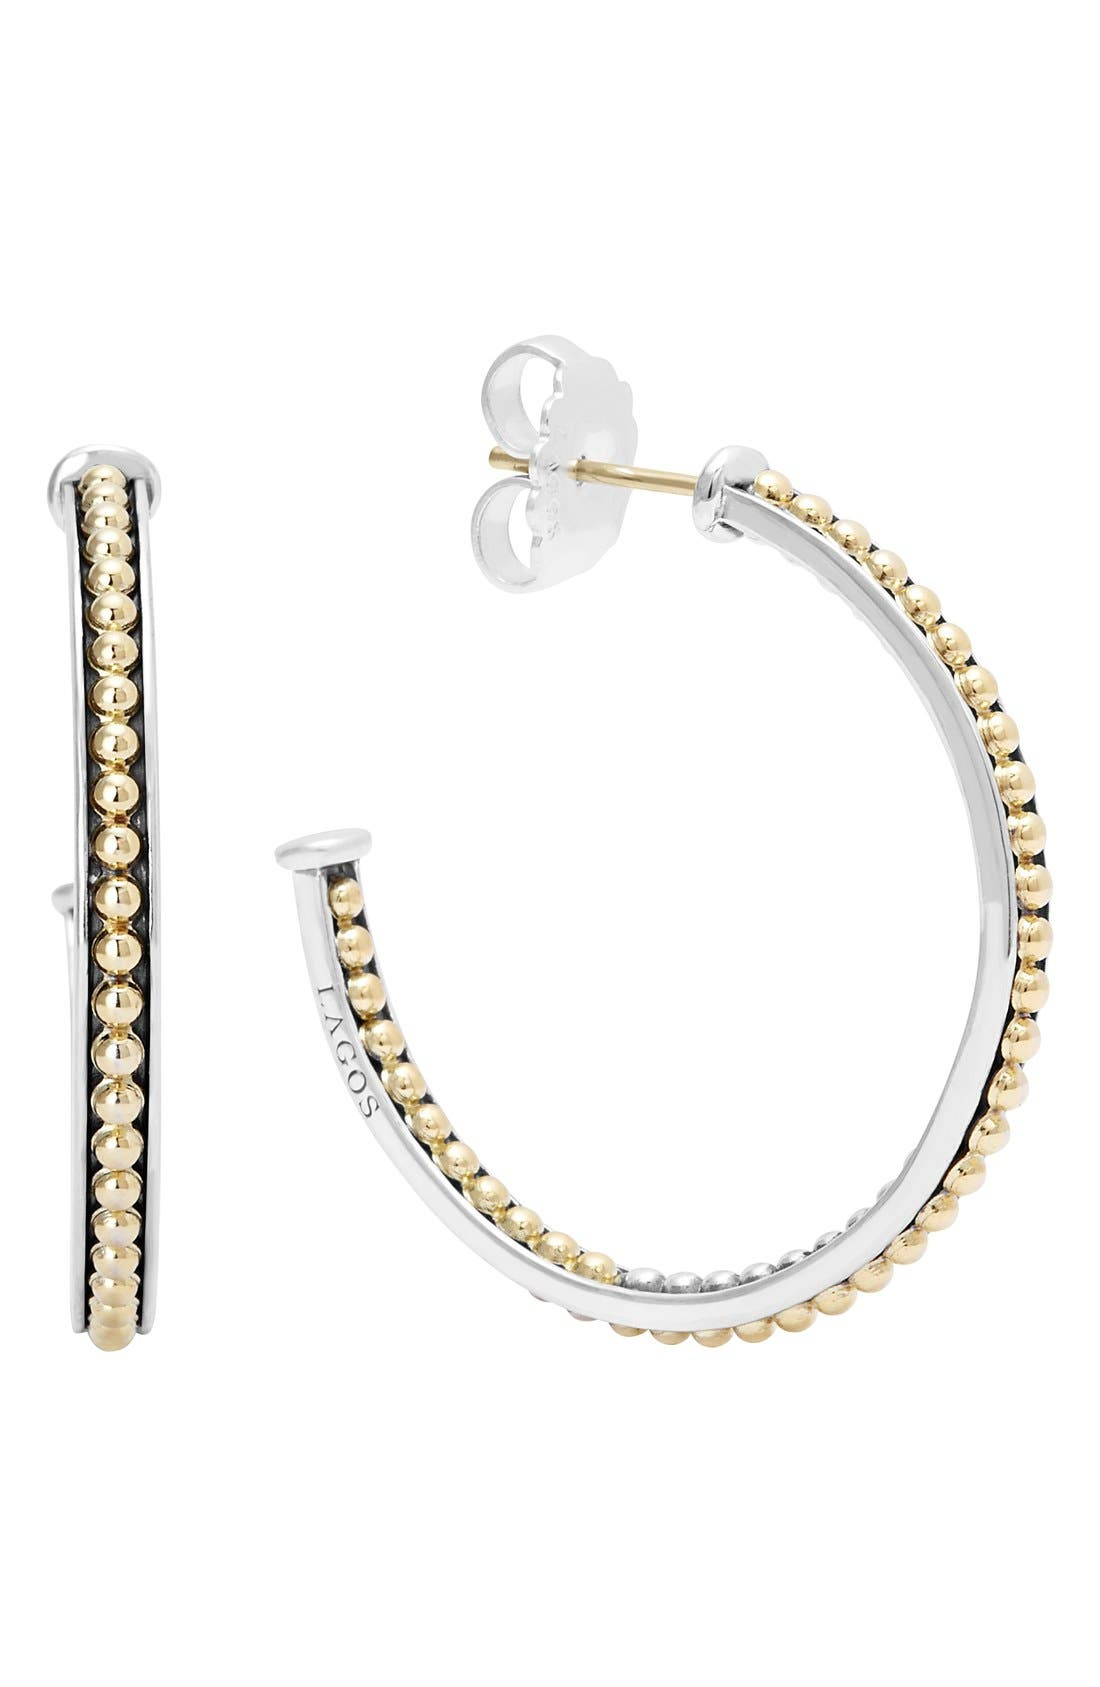 LAGOS 'Enso' Caviar Hoop Earrings